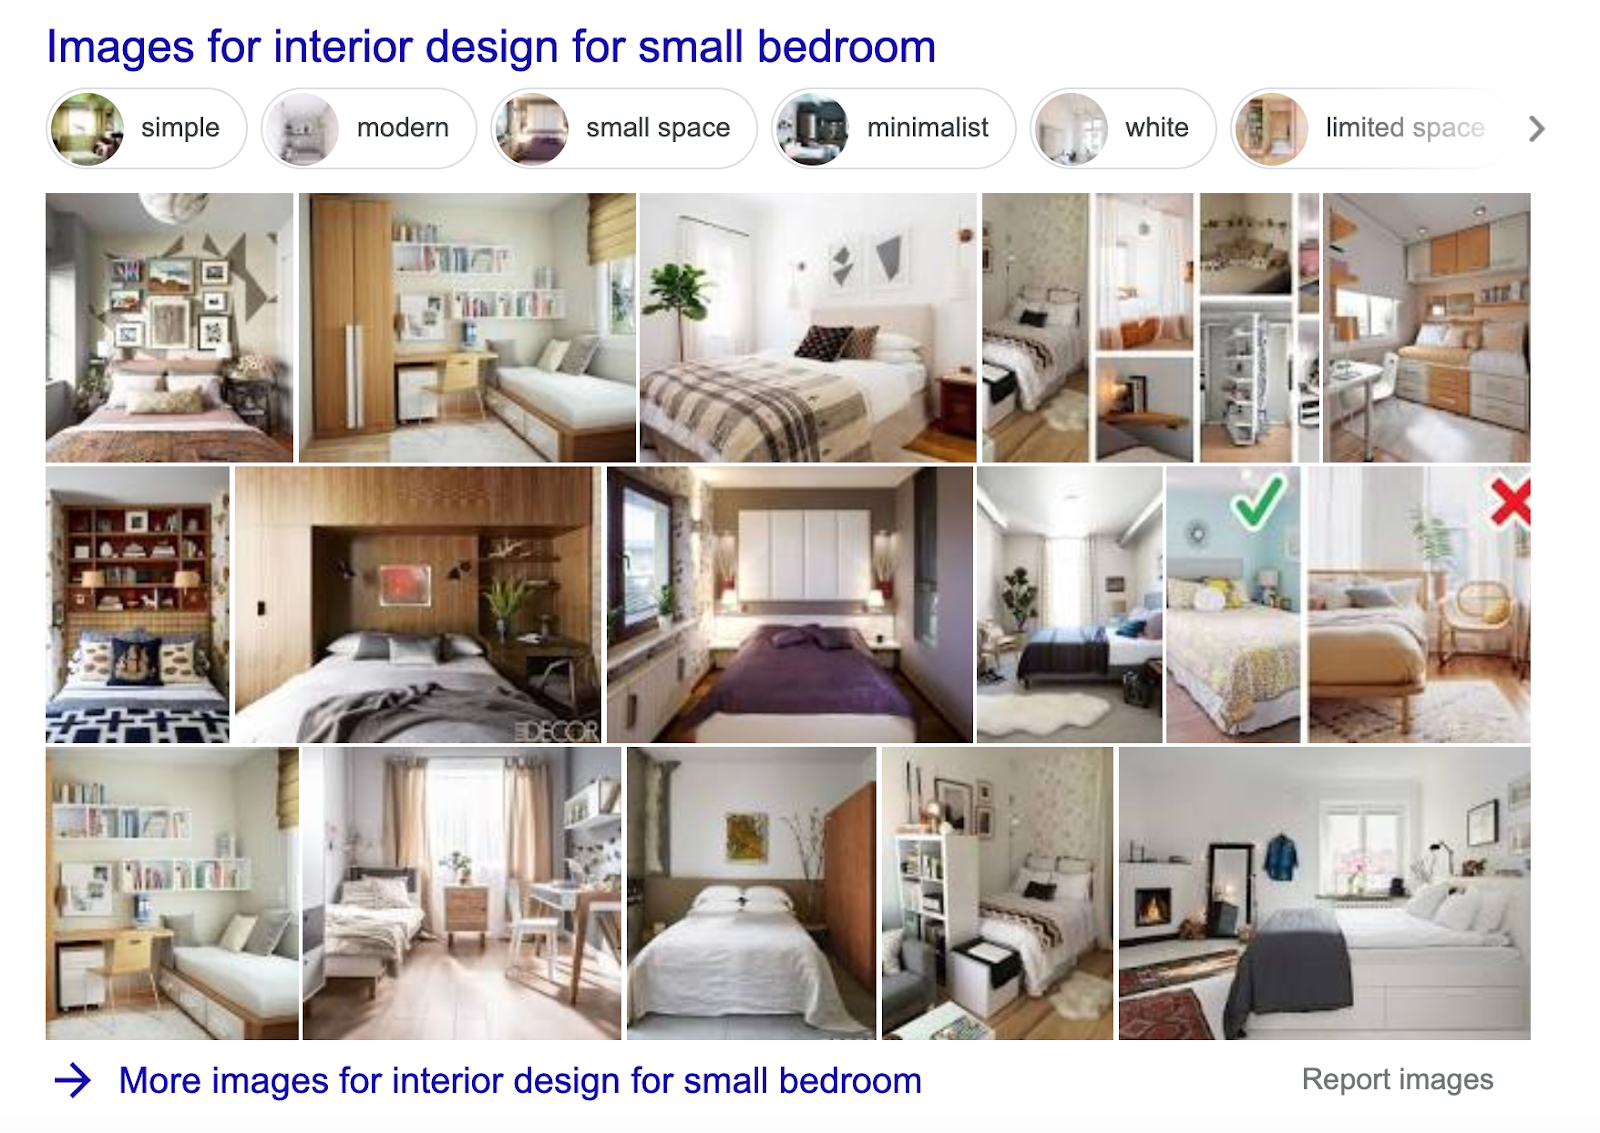 image pack in the interior design for small bedroom SERP